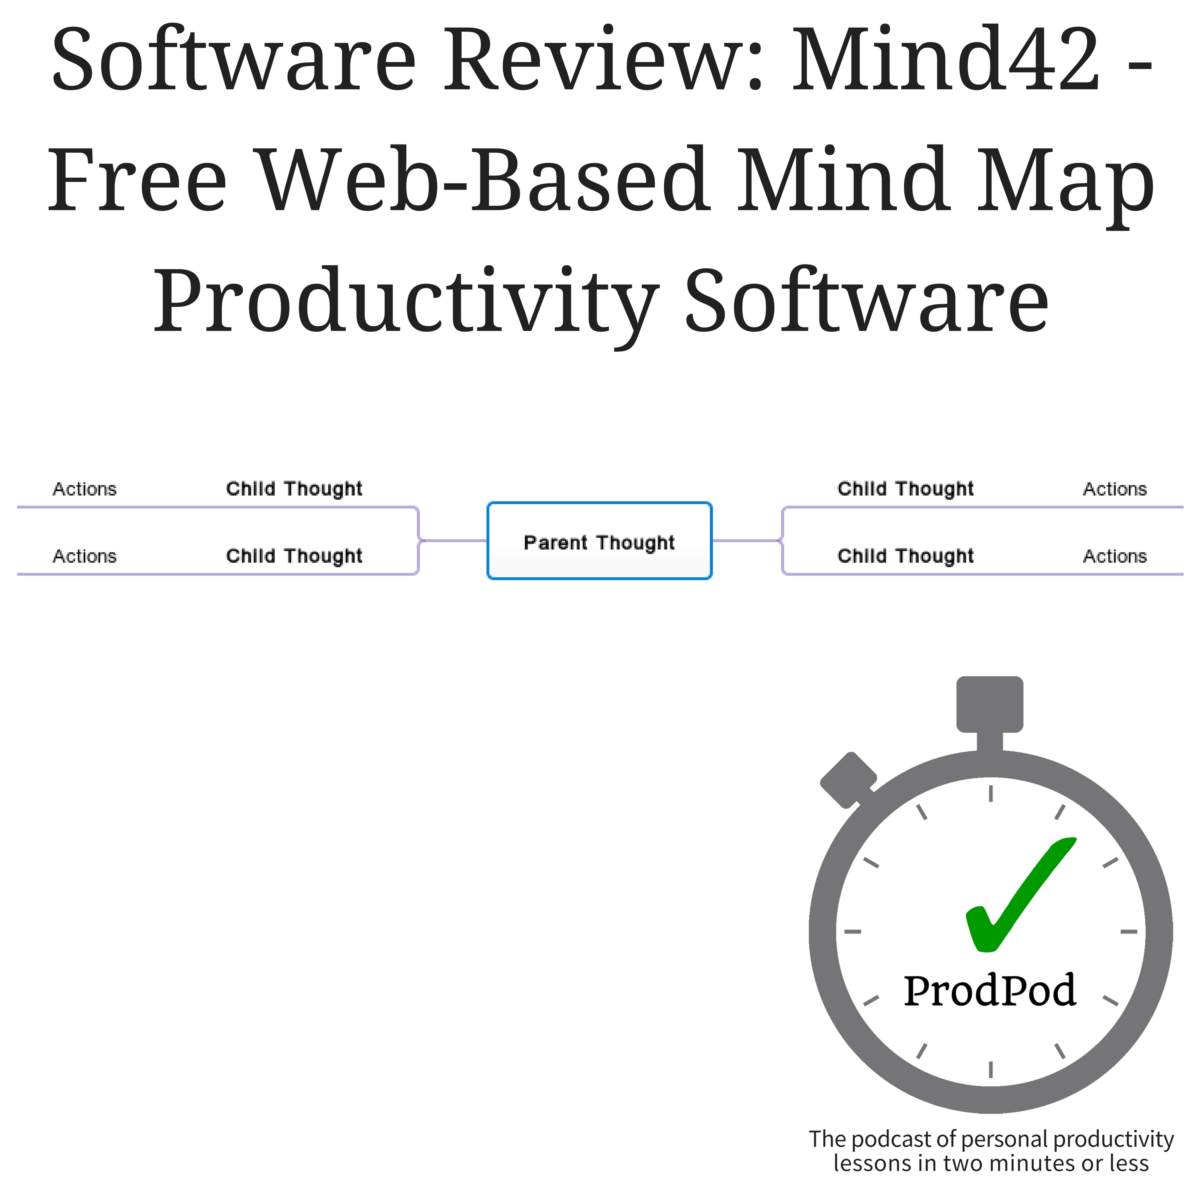 Software Review- Mind42 - Free Web-Based Mind Map Productivity Software - ProdPod